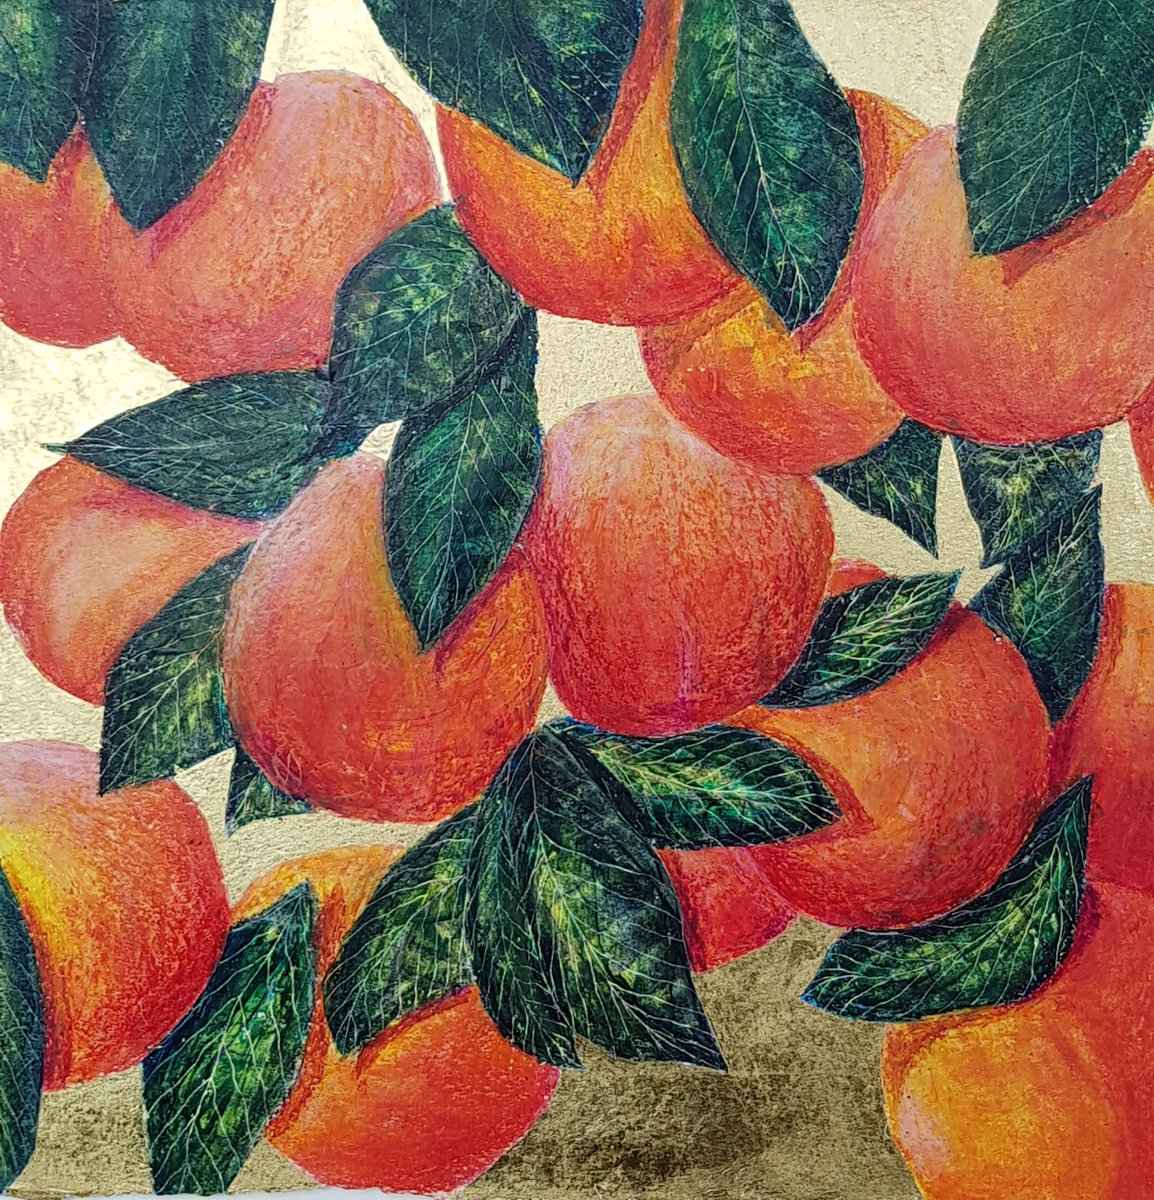 Vibrant painting of a Nectarine tree with juicy ripe fruit on gold leaf